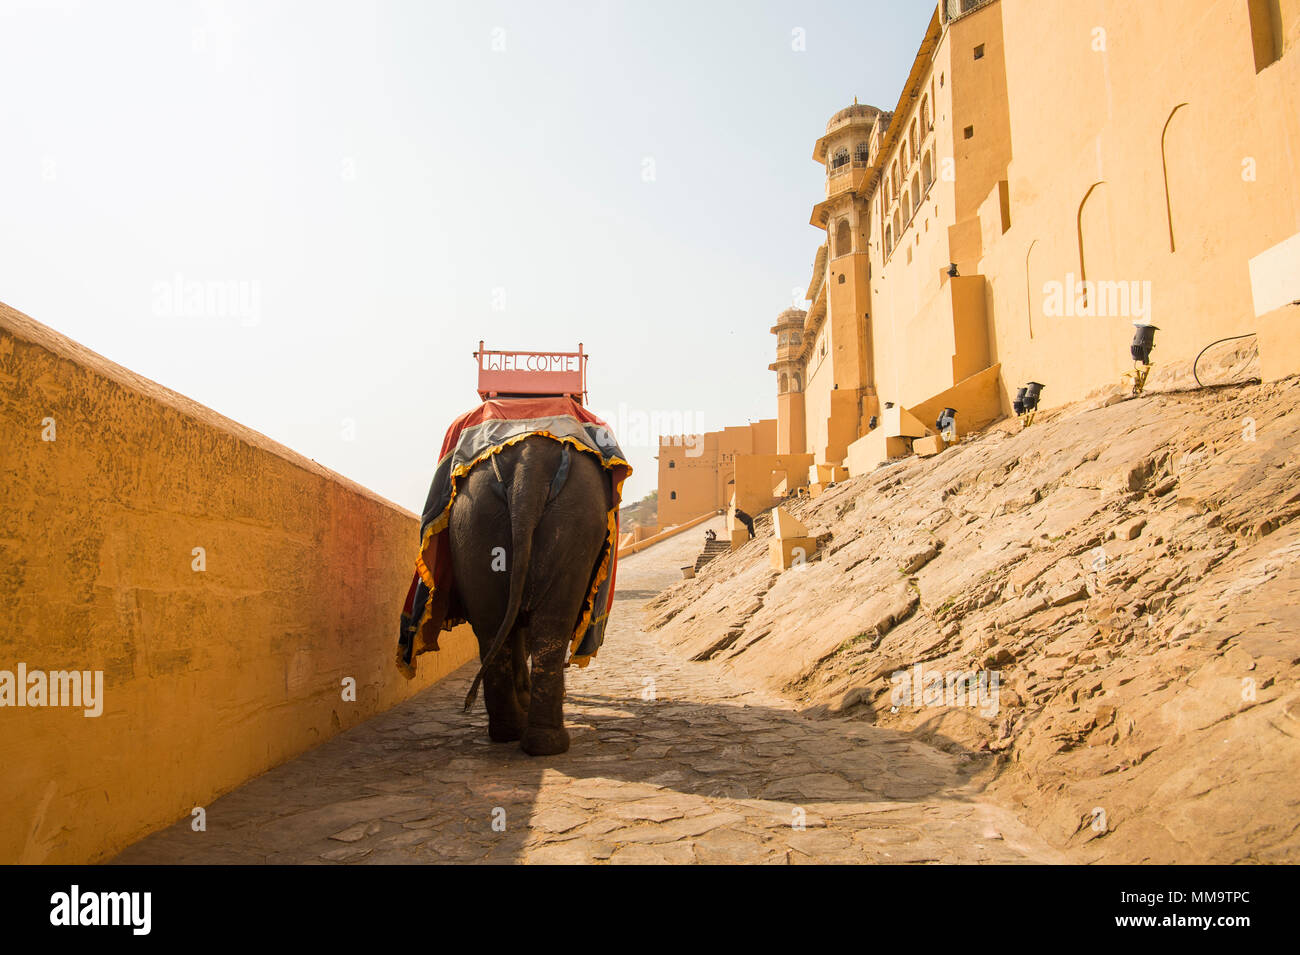 A decorated elephant is walking to Amber Fort in Jaipur, India. Elephant rides are popular tourist attraction in Amber Fort. - Stock Image